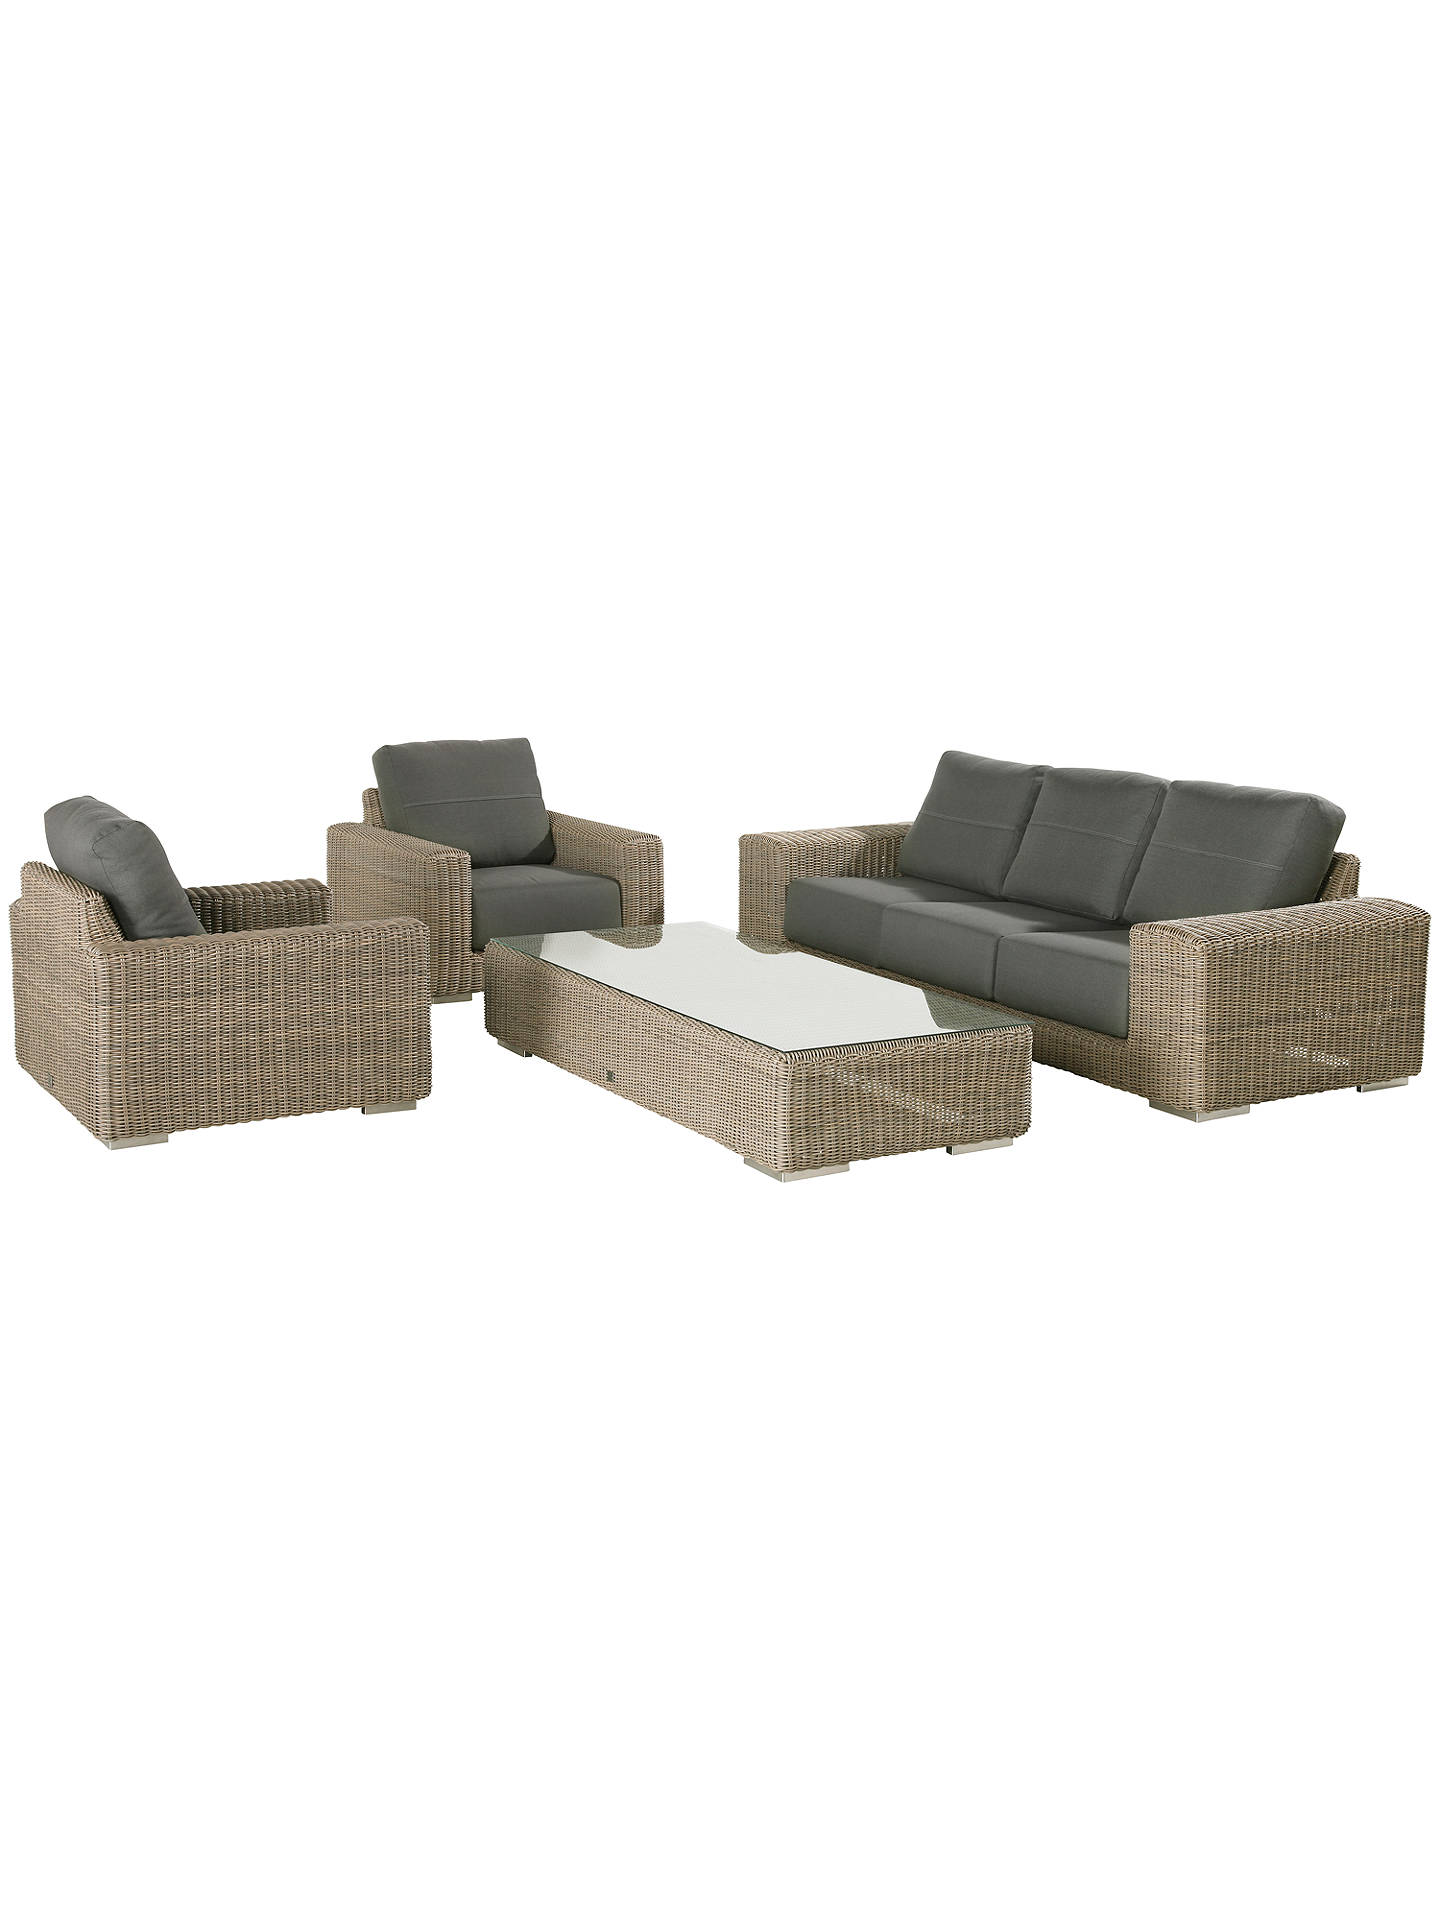 Buy4 Seasons Outdoor Kingston Garden Lounging Chair Online at johnlewis.com